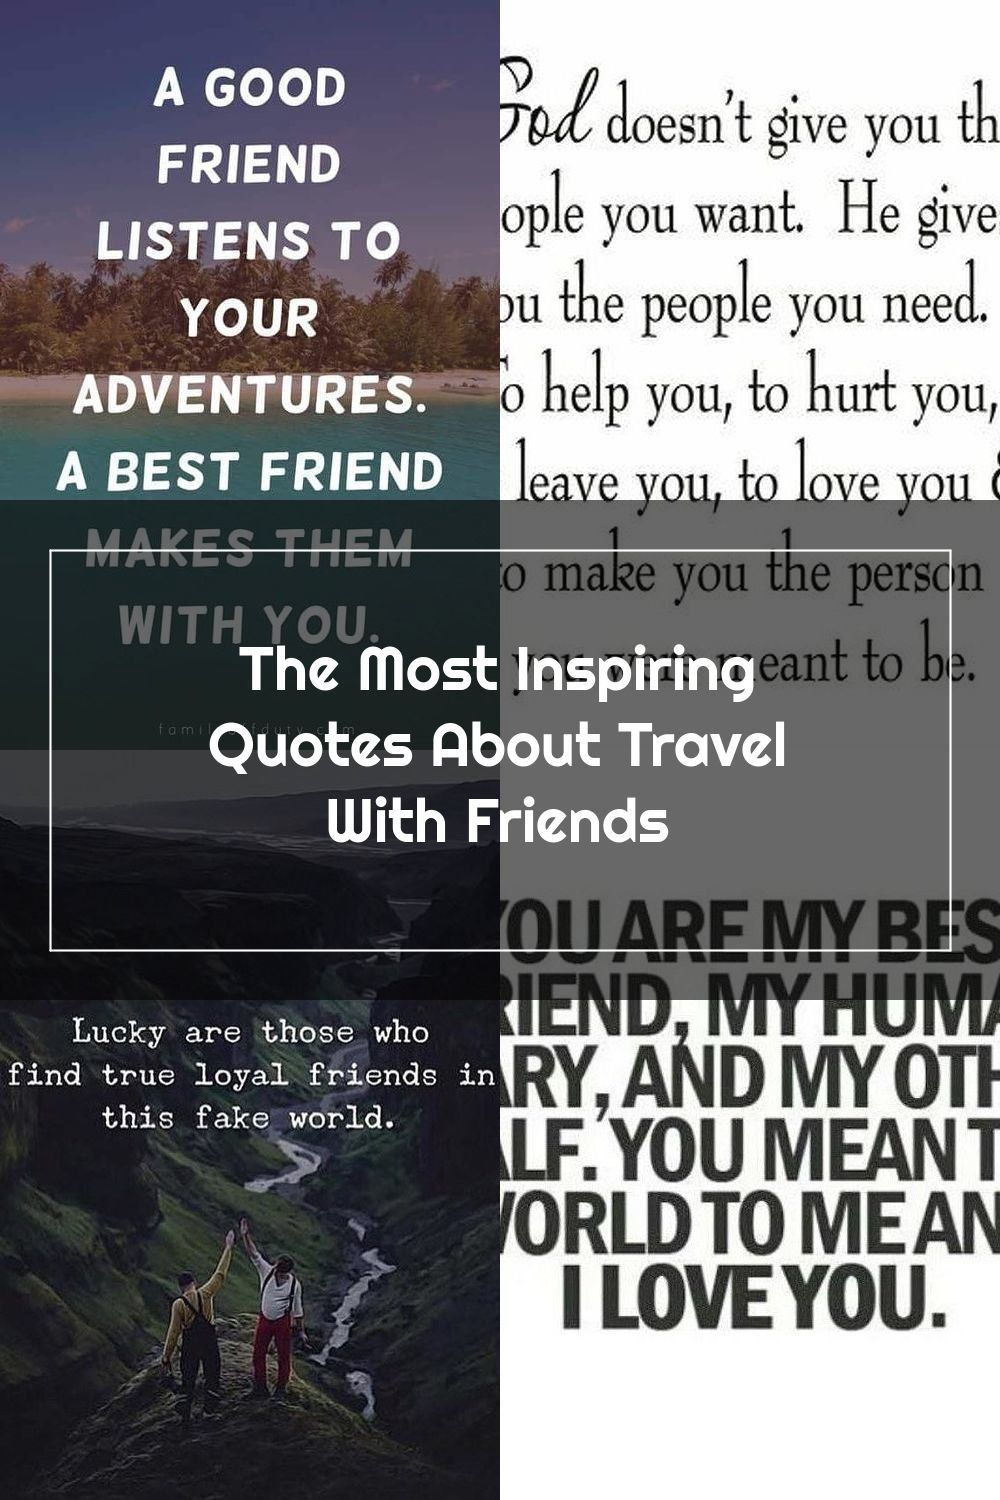 quotes about travelling with friends - a good friend ...